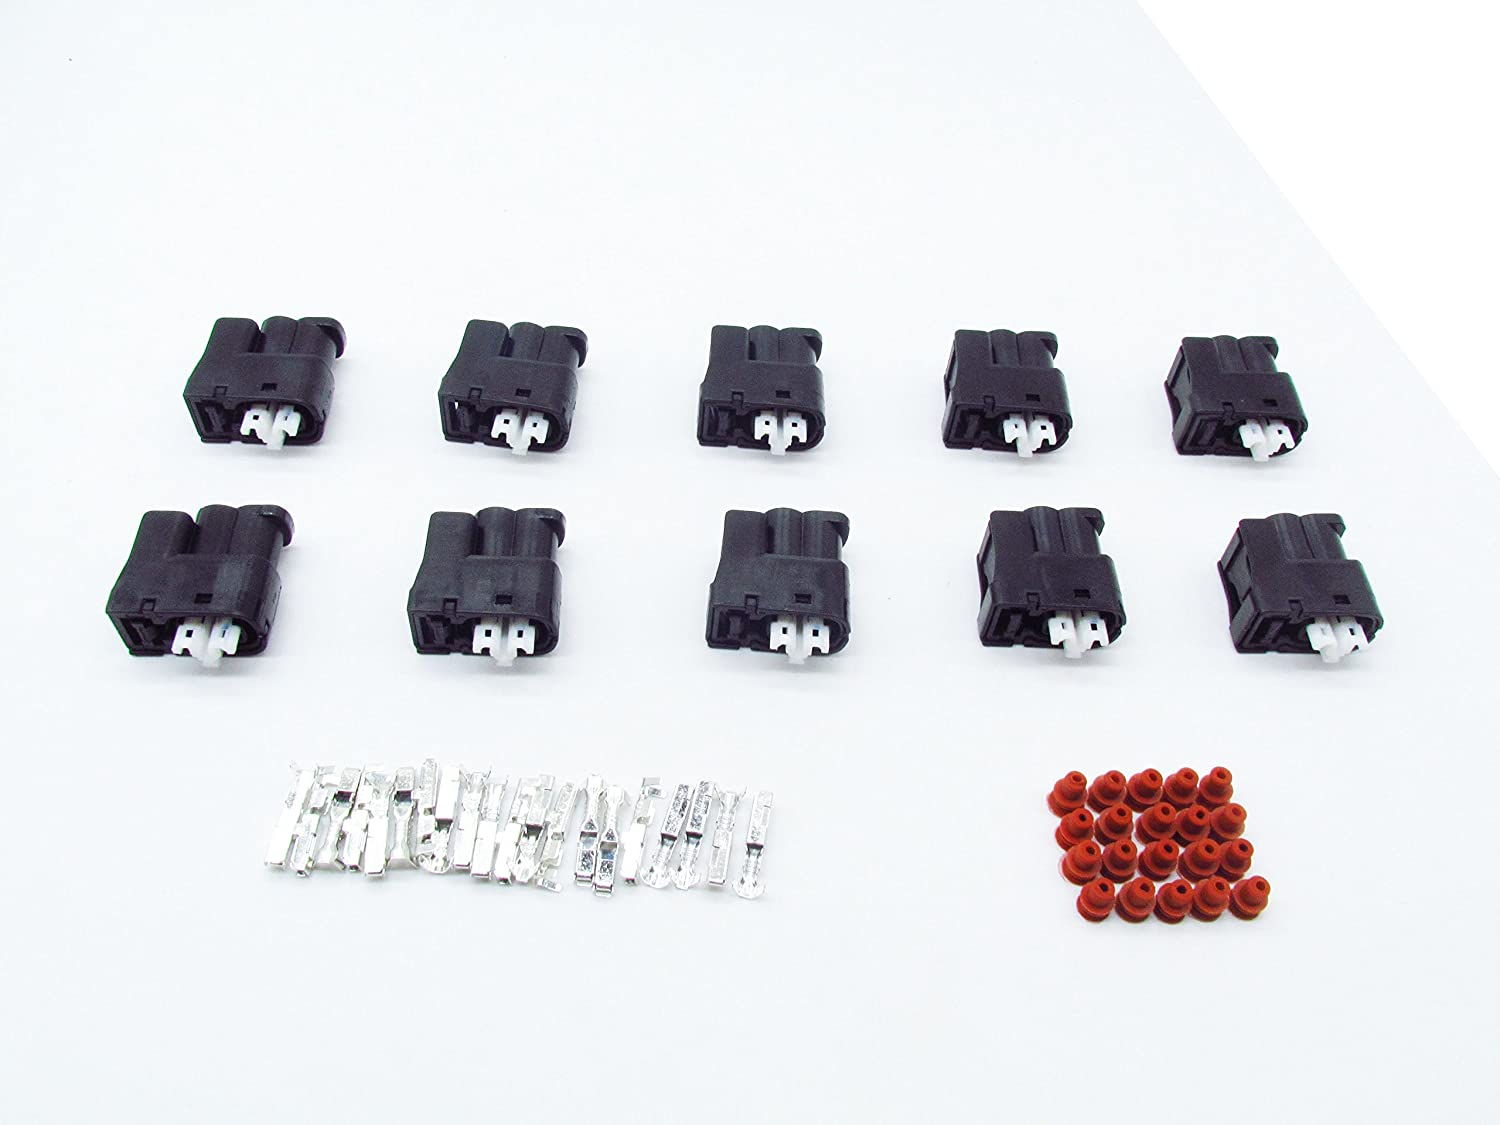 CNKF 10 Sets 2 pin Way Toyota 2JZ-GE Lexus SC300 Auto Connector Bodies Soarer VVTi Supra 7283-8226-30 With Terminals and Seals kaifa elec